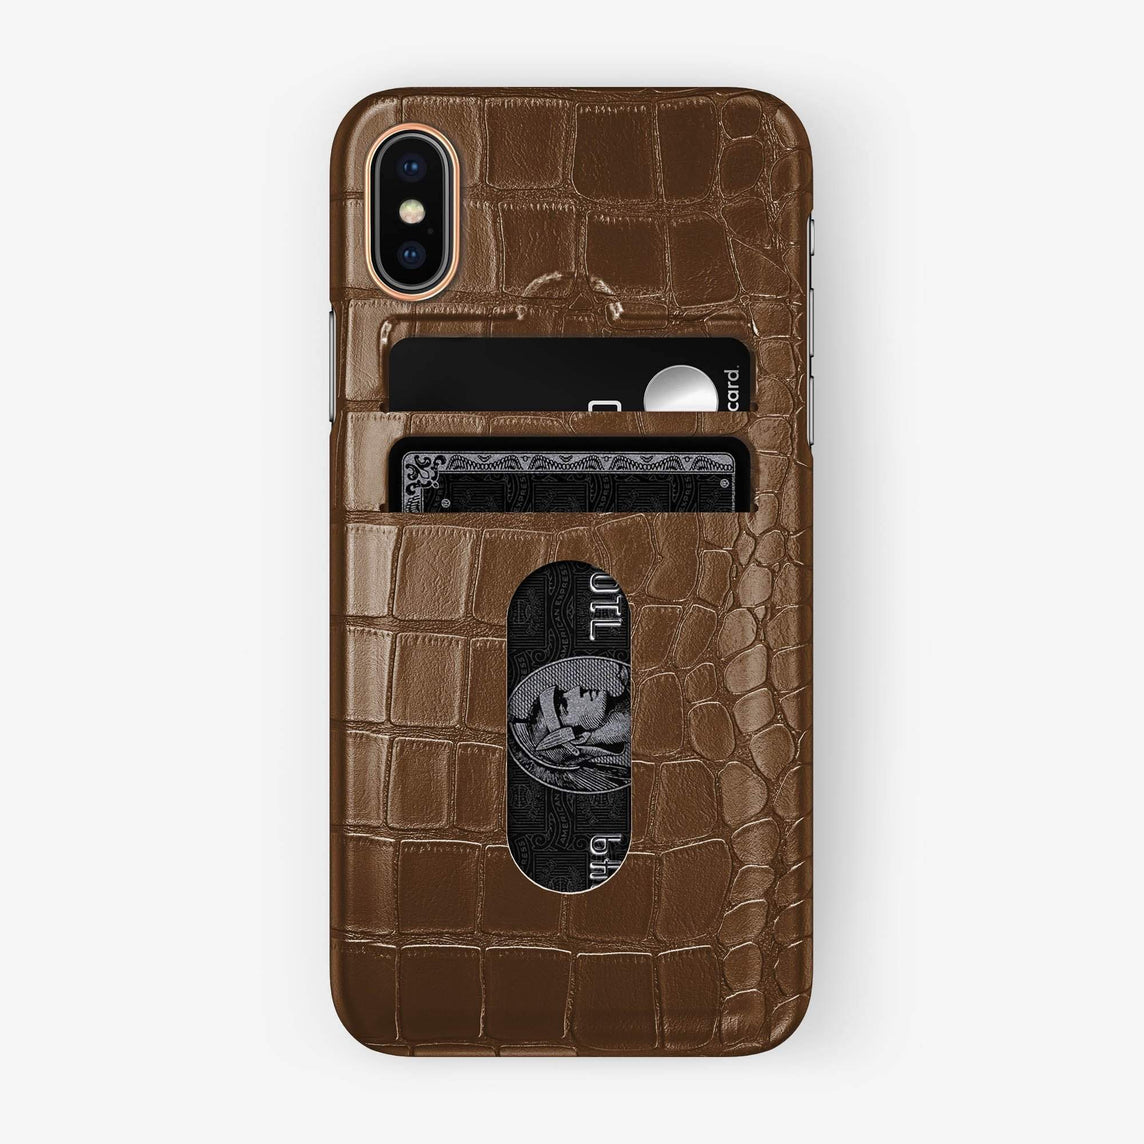 Alligator Card Holder Case iPhone Xs Max | Brown - Rose Gold - Hadoro